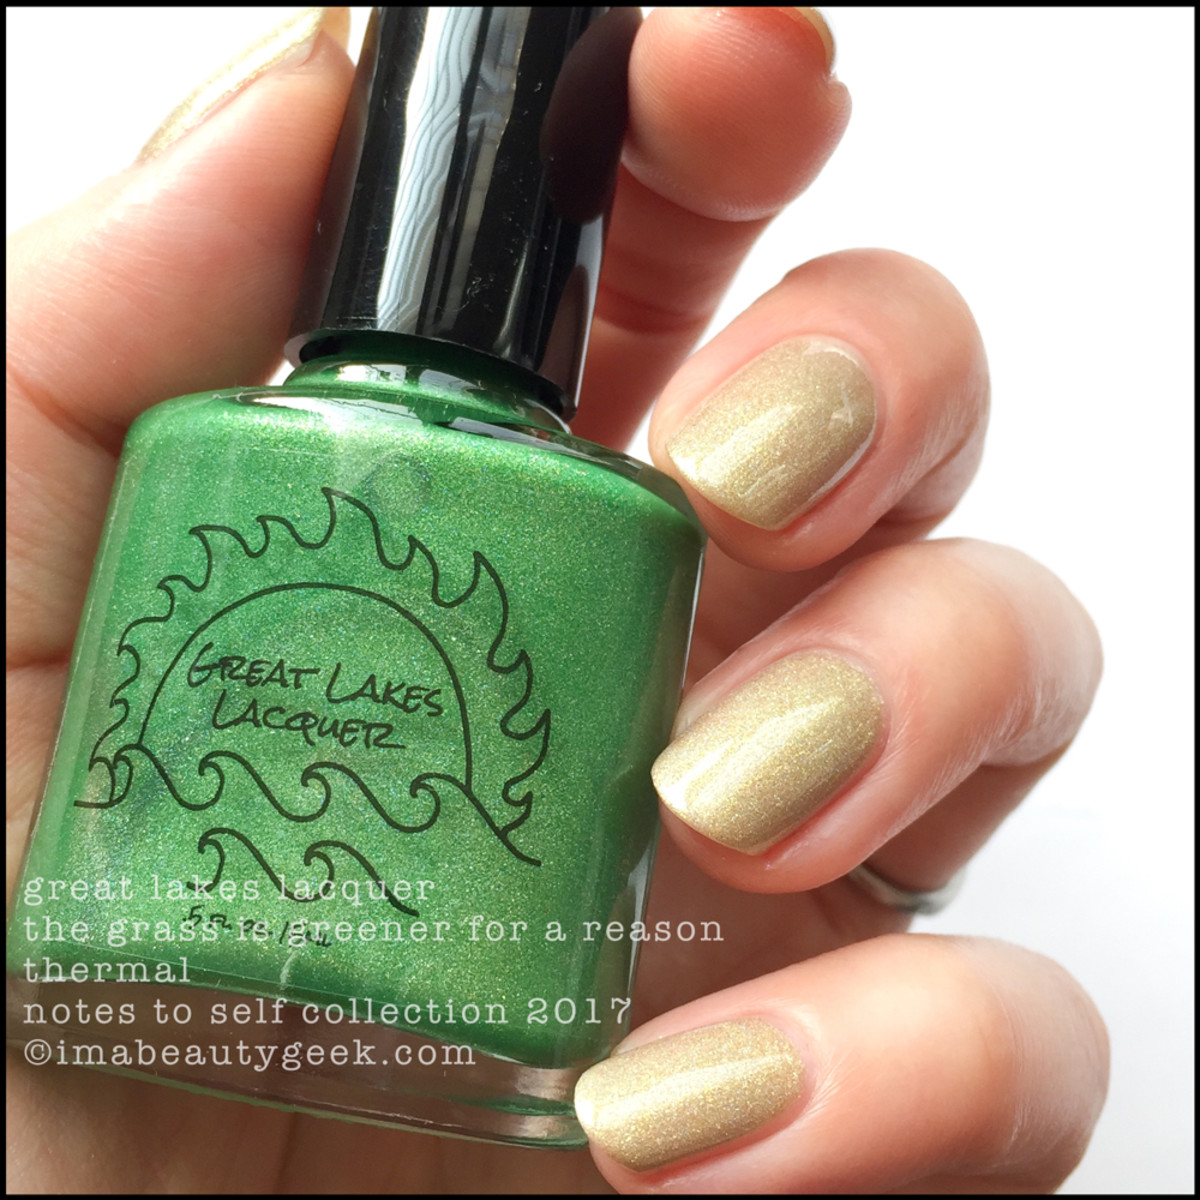 Great Lakes Lacquer The Grass is Greener for a Reason 2 _ Great Lakes Lacquer Notes to Self Thermal Collection 2017